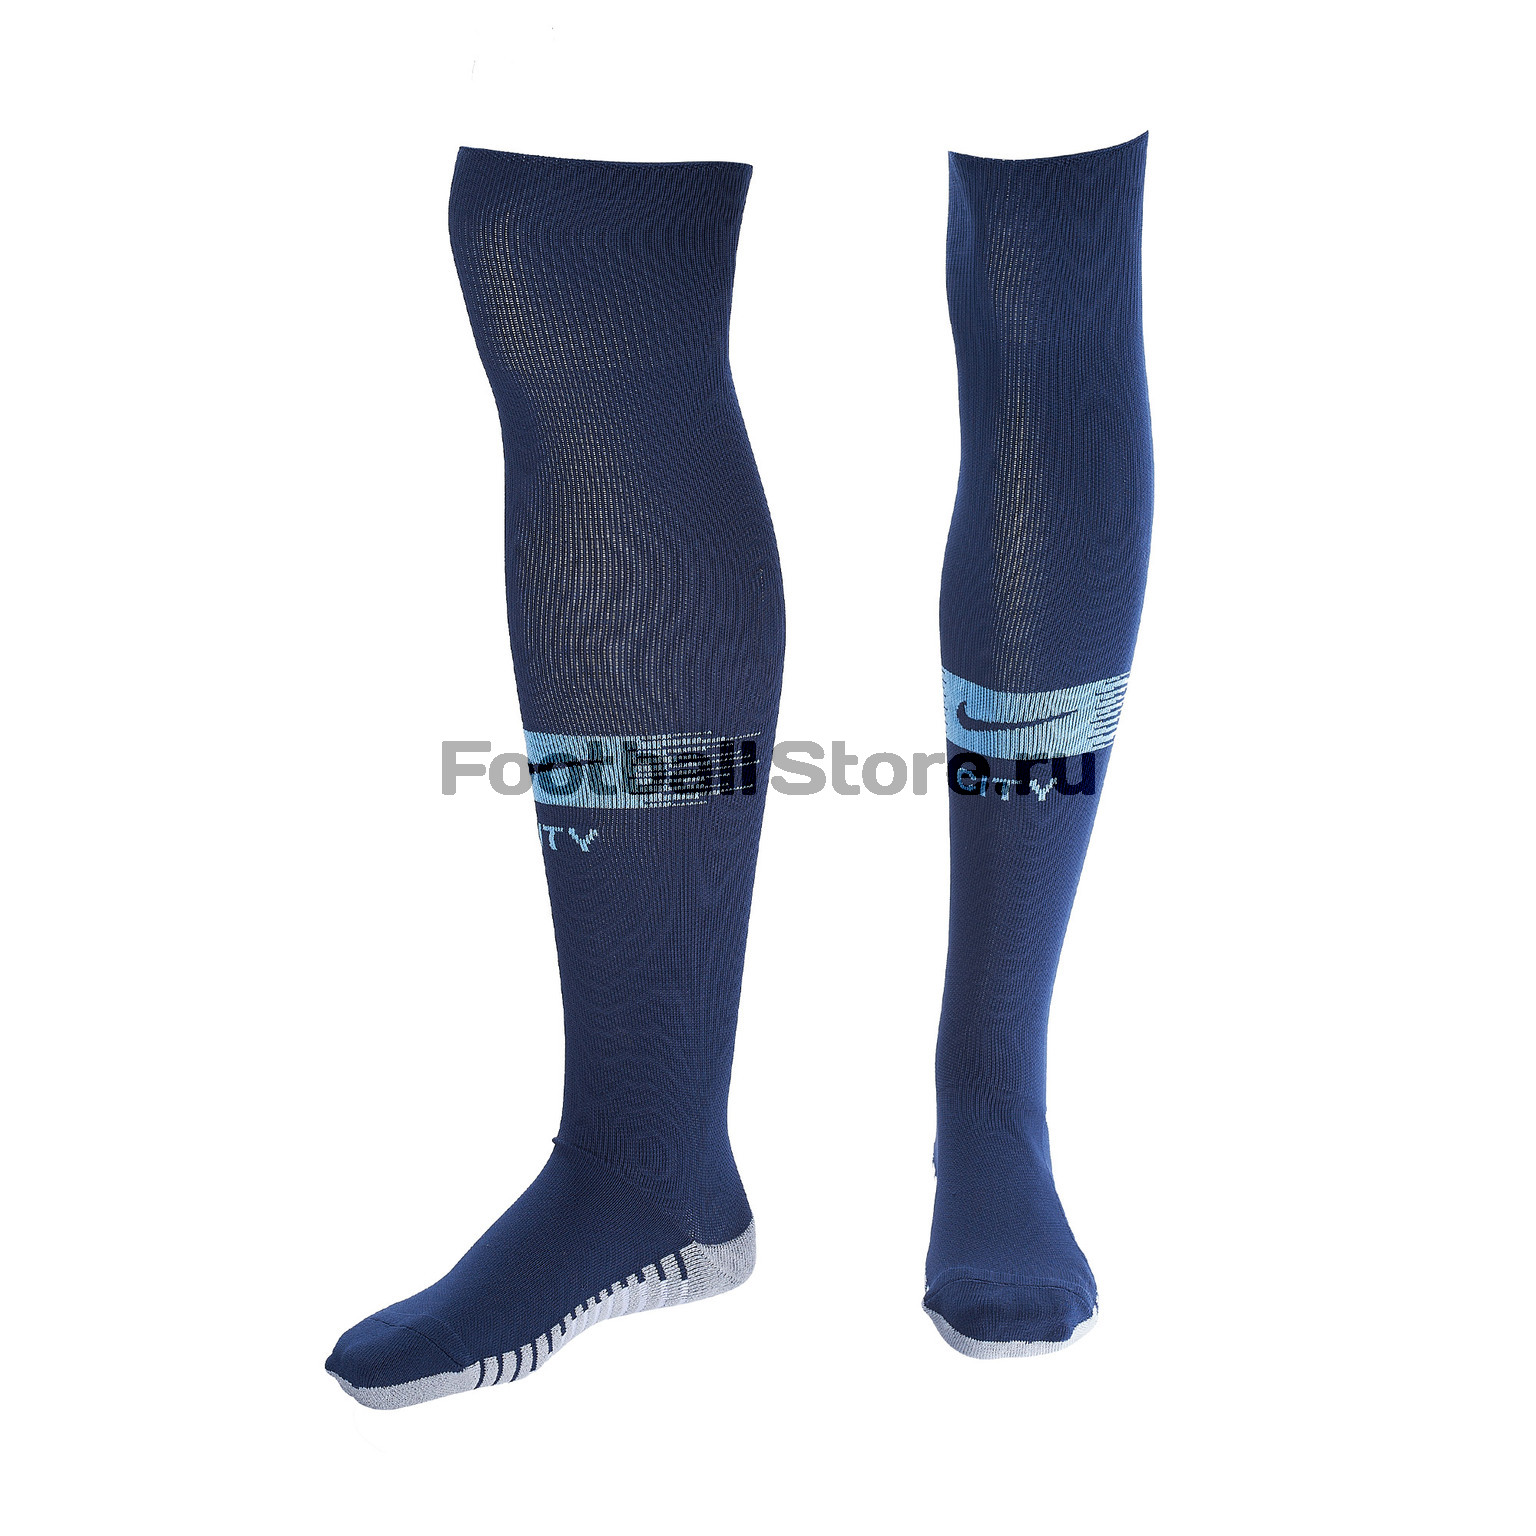 Гетры Nike Manchester City Stadium Sock SX6354-410 футболка nike manchester city 898623 488